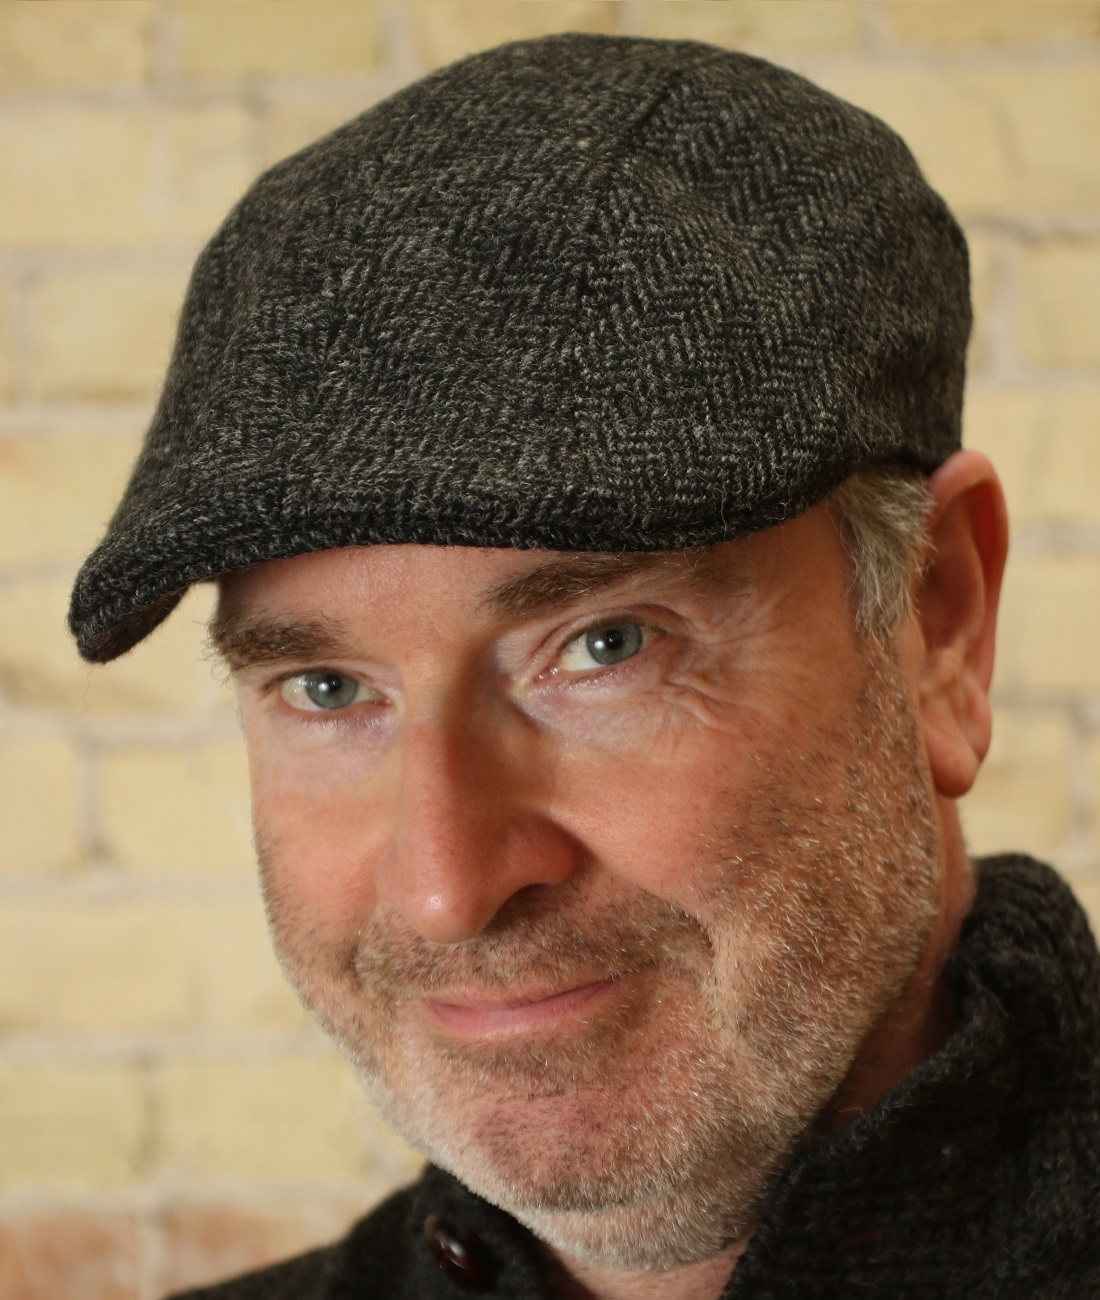 858a52b5f1dd1 New Duckbill Touring Cap Irish Made Tweed Structured Crafted by John ...